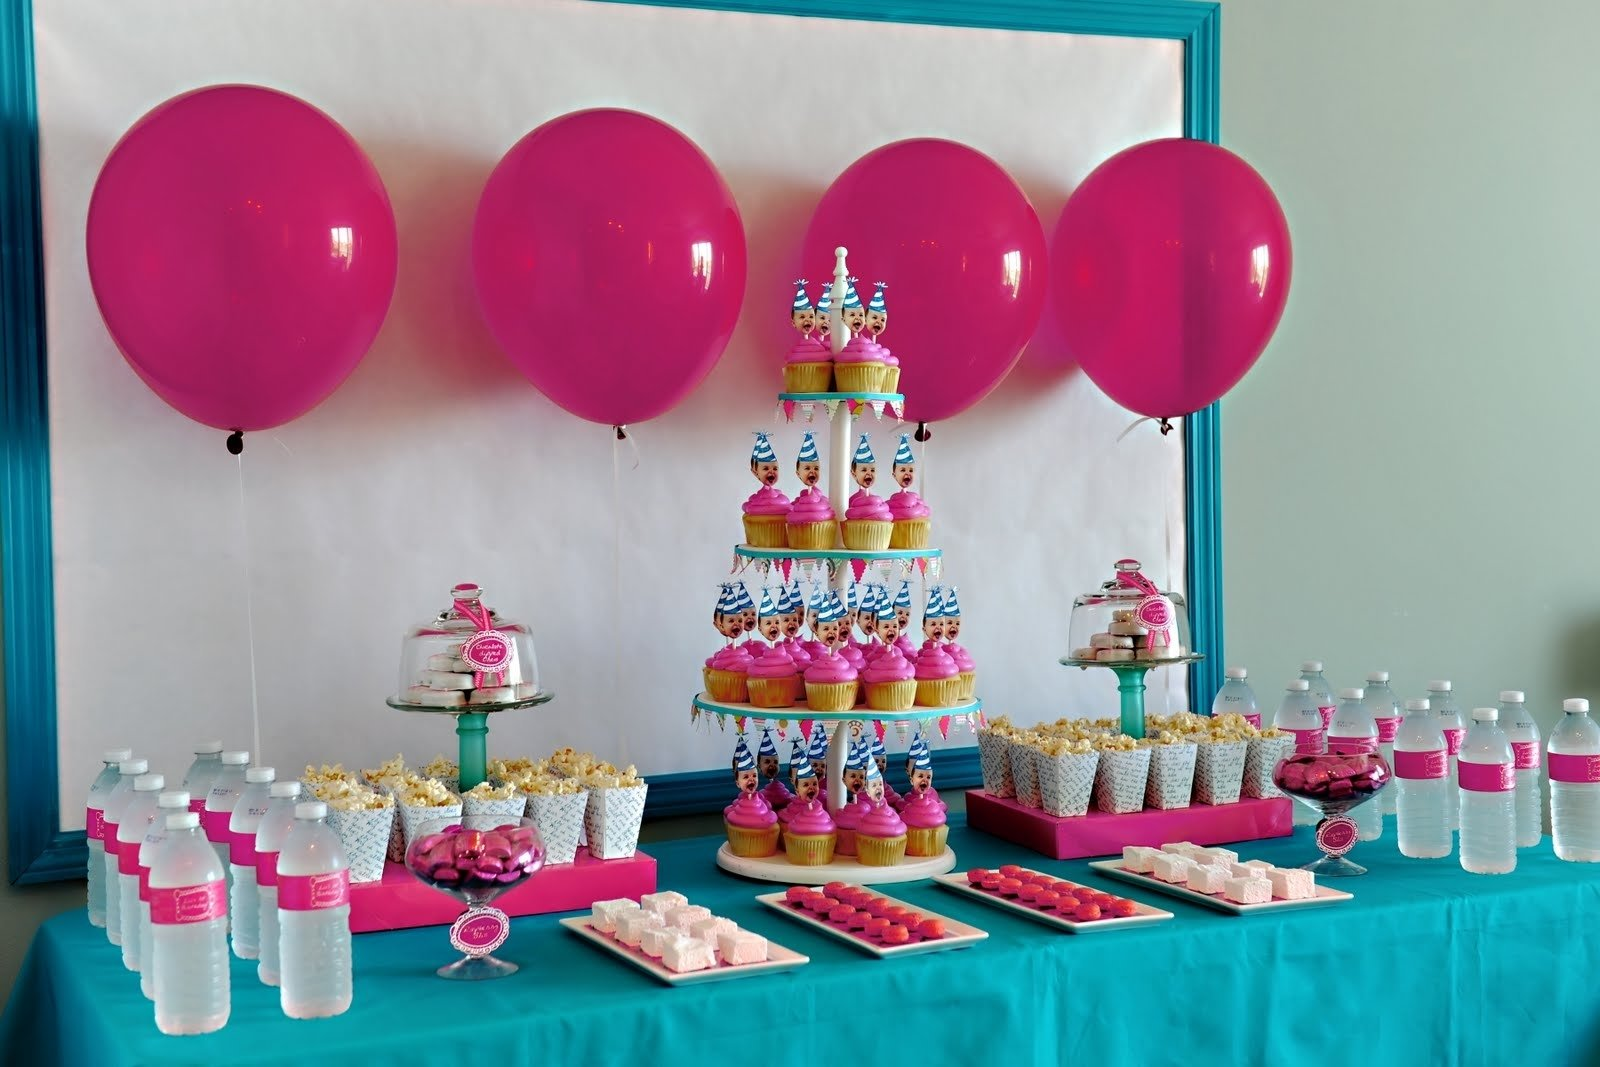 10 Gorgeous Birthday Ideas For 8 Year Old Girl themes birthday 2 year old baby girl birthday party ideas in 2021